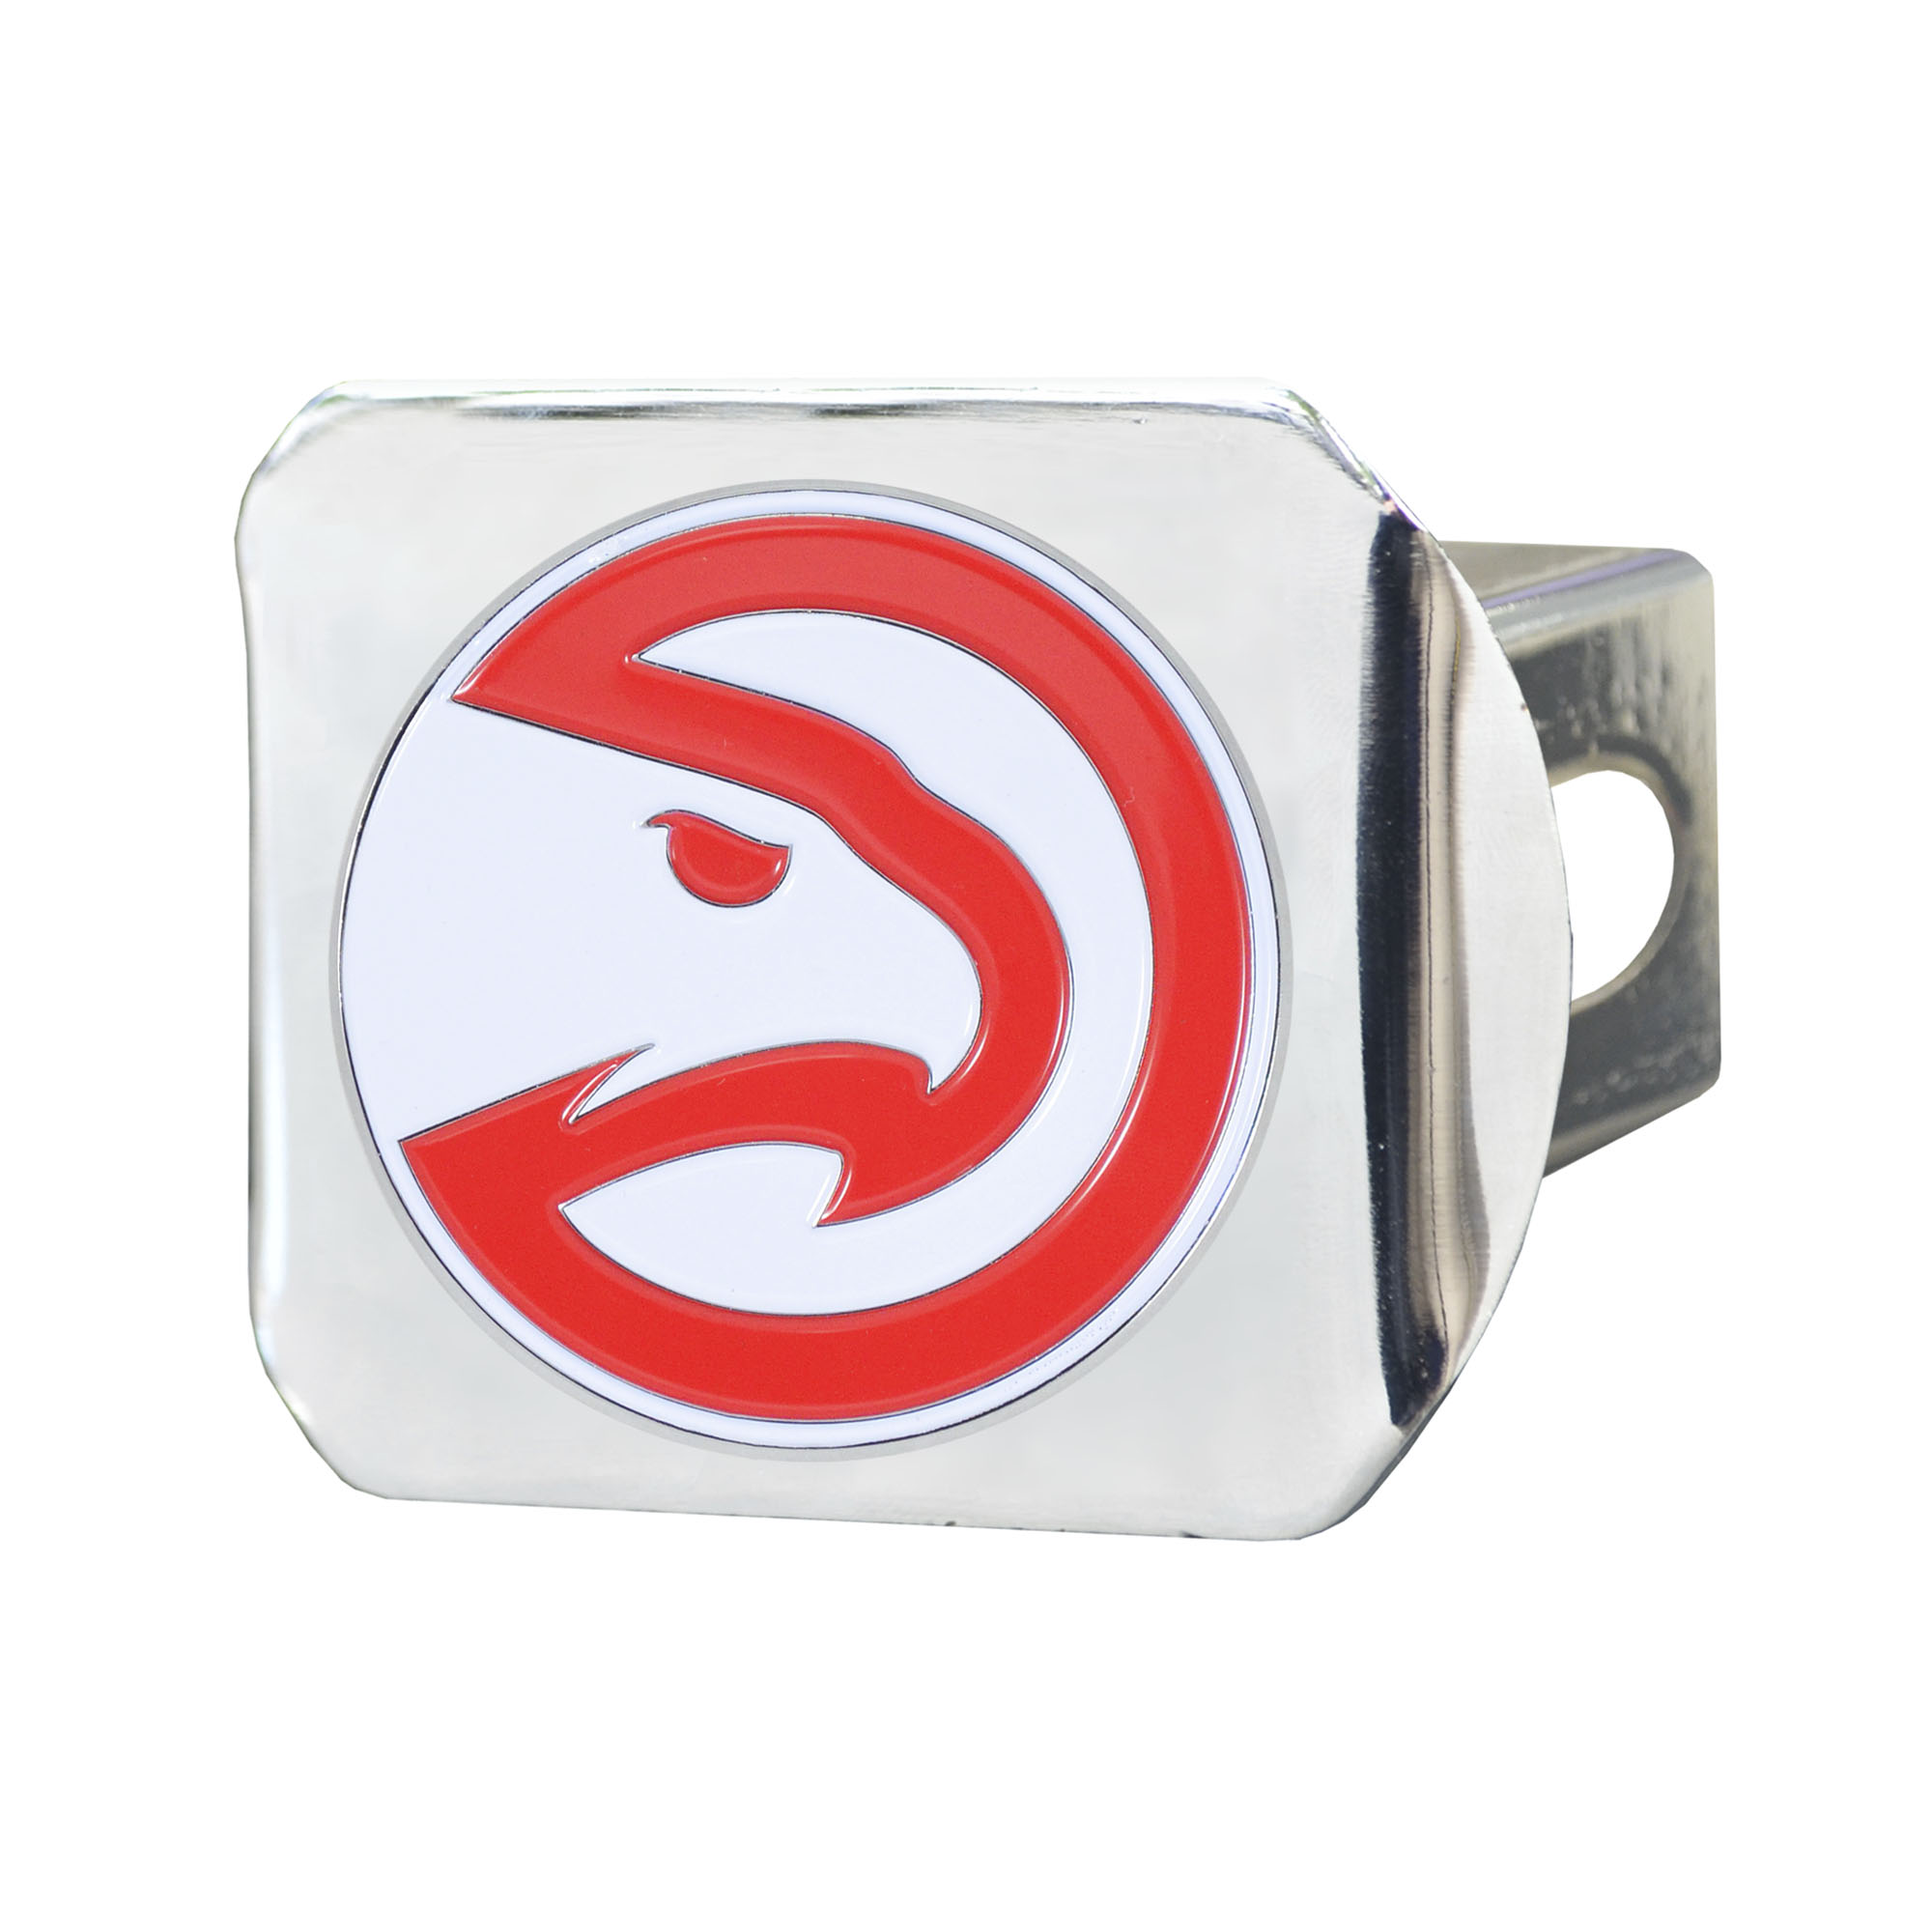 NBA Atlanta Hawks Color Class III Hitch - Chrome Hitch Cover Auto Accessory